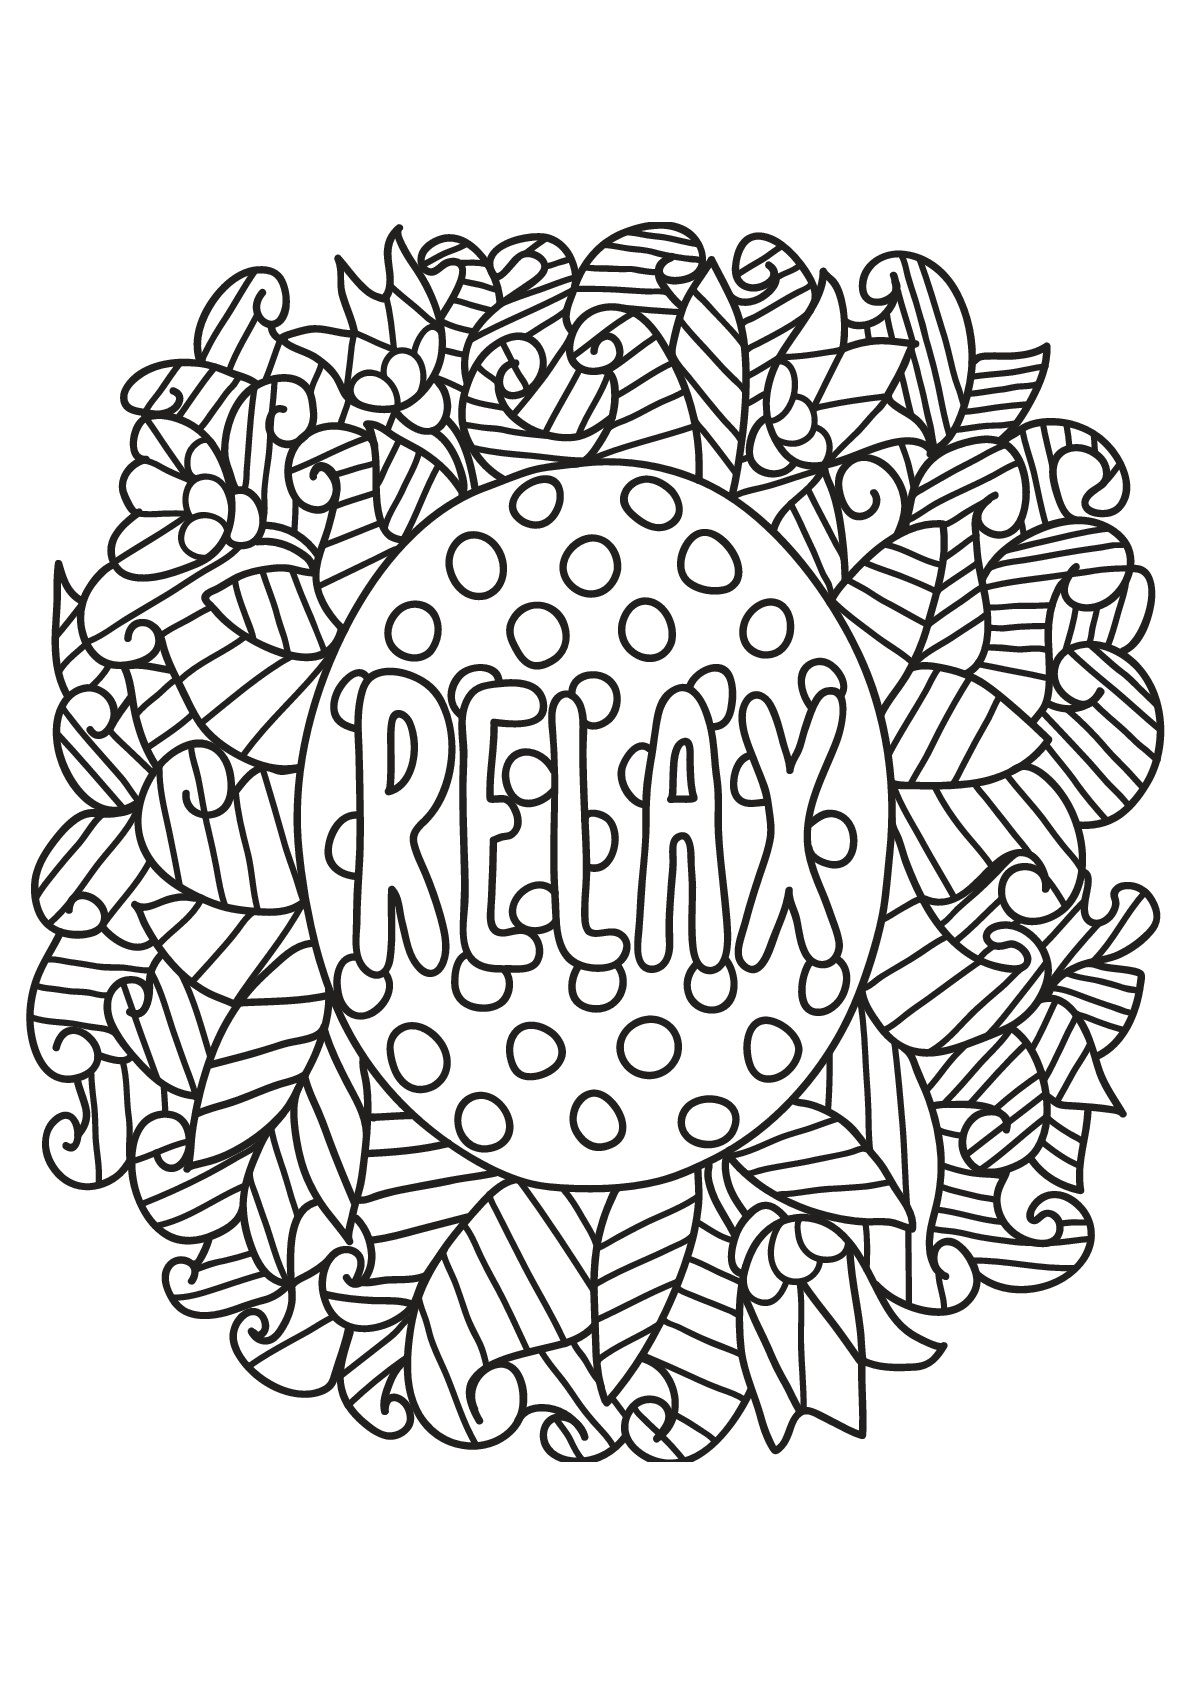 free book quote 19 quotes adult coloring pages. Black Bedroom Furniture Sets. Home Design Ideas